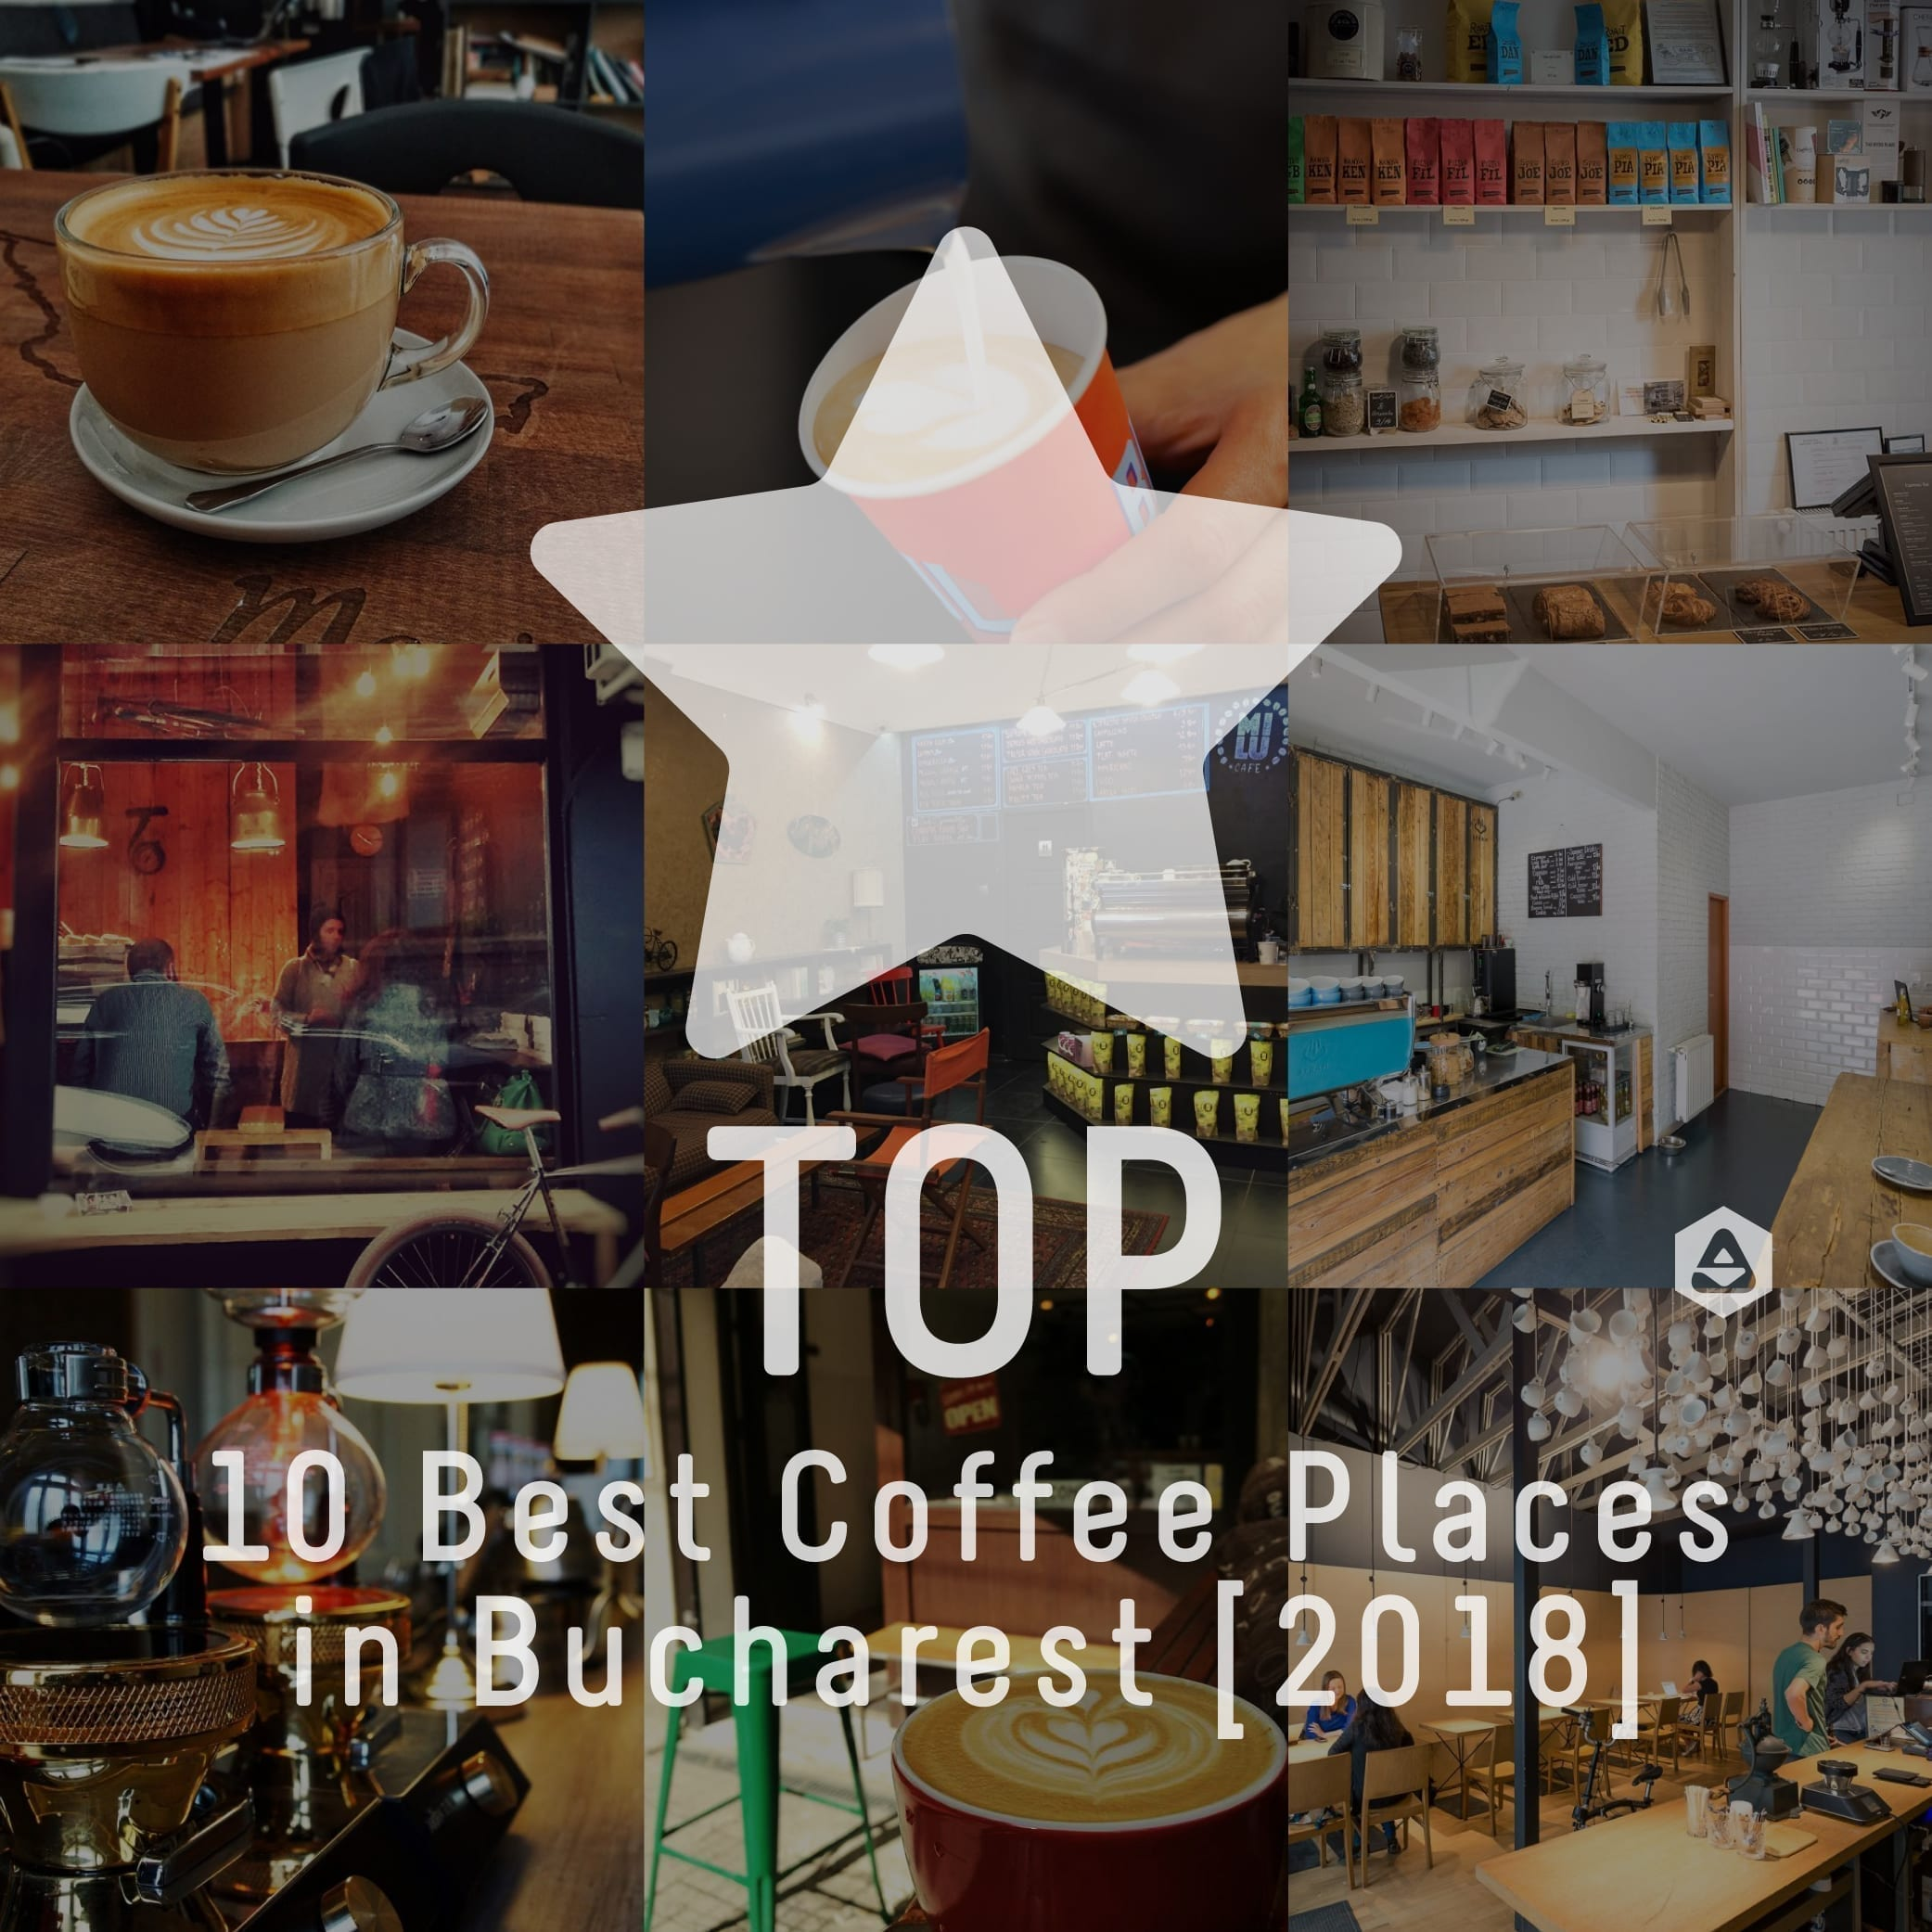 TOP 10 Best Places to Enjoy Coffee in Bucharest [2018]